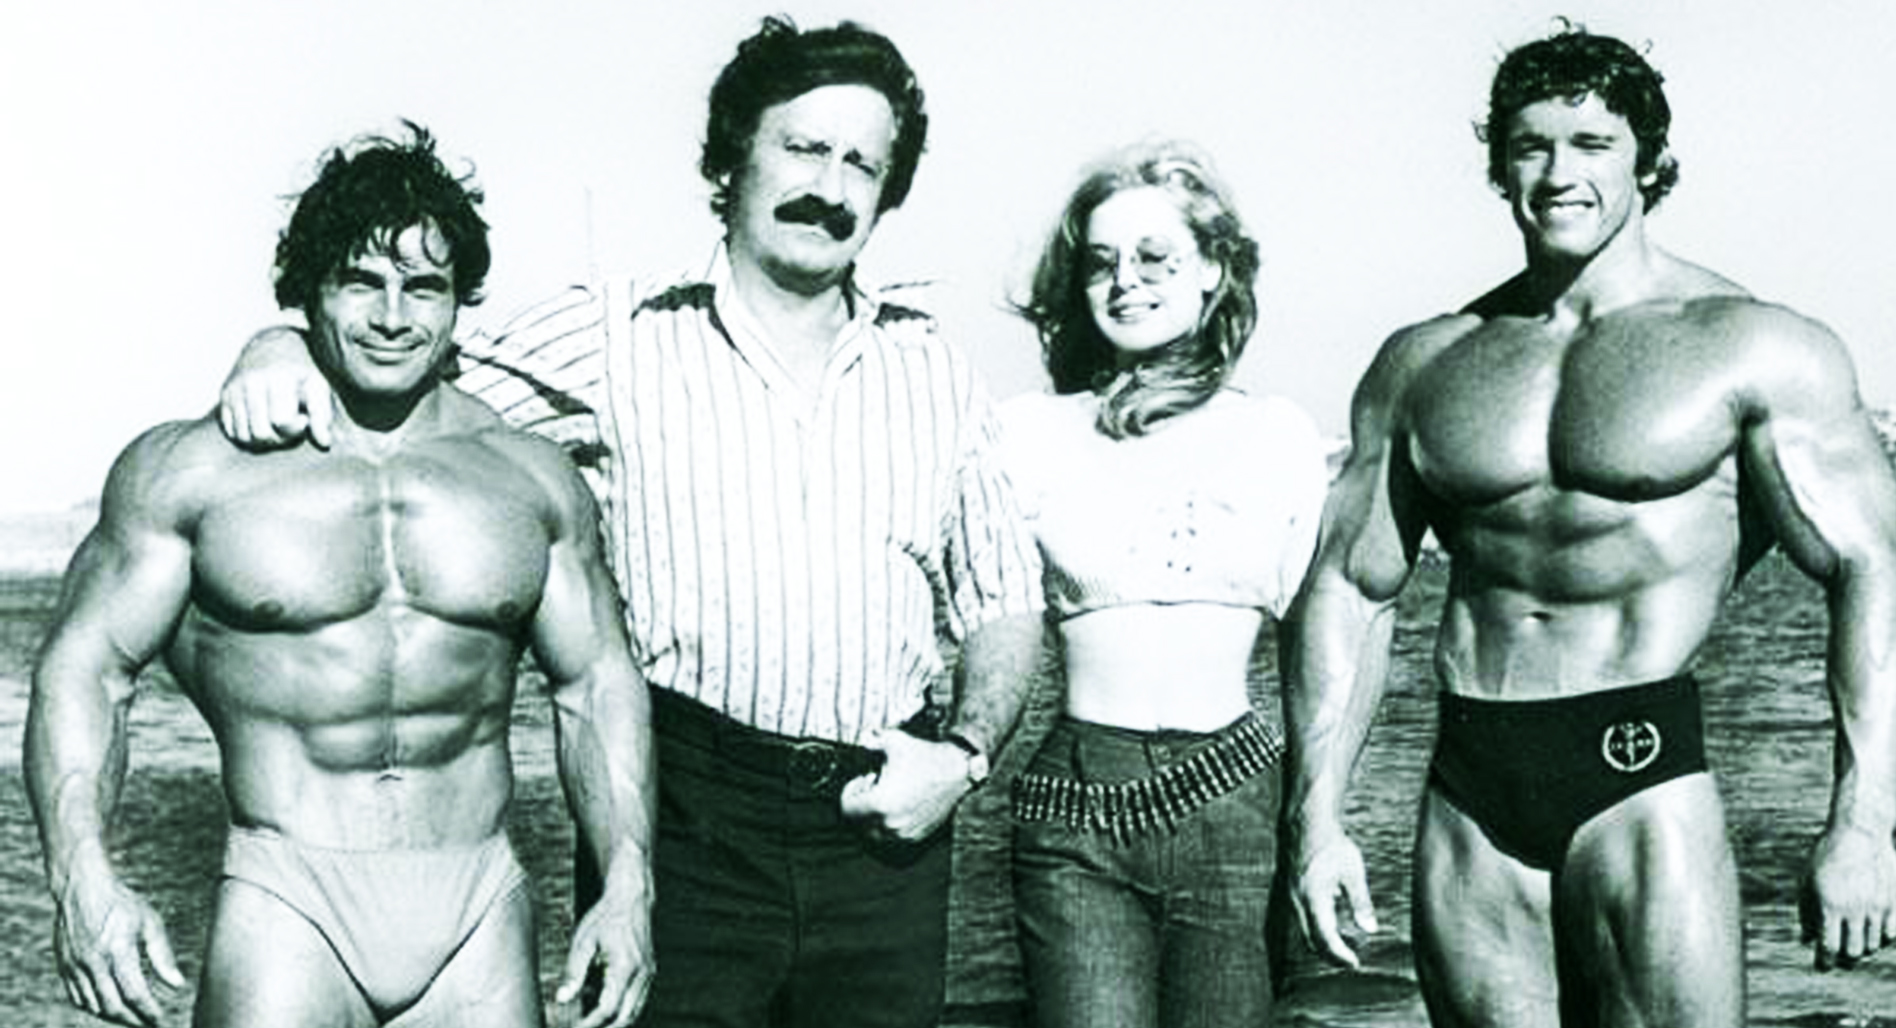 Classic forgotten photos: Muscle Beach